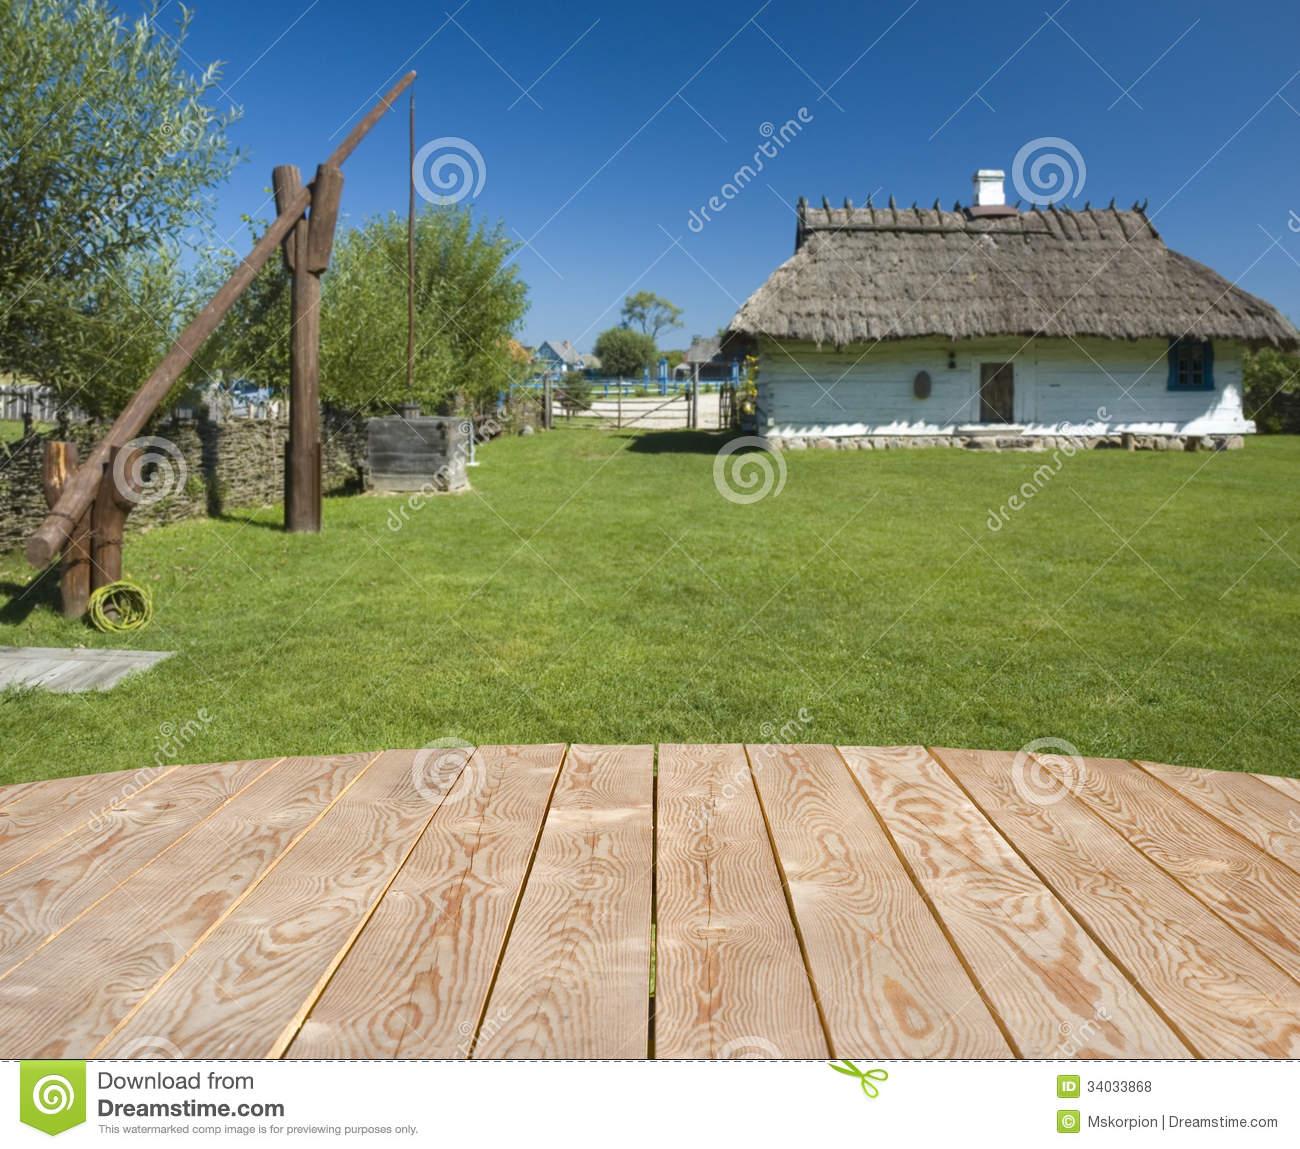 Empty wooden table in the countryside